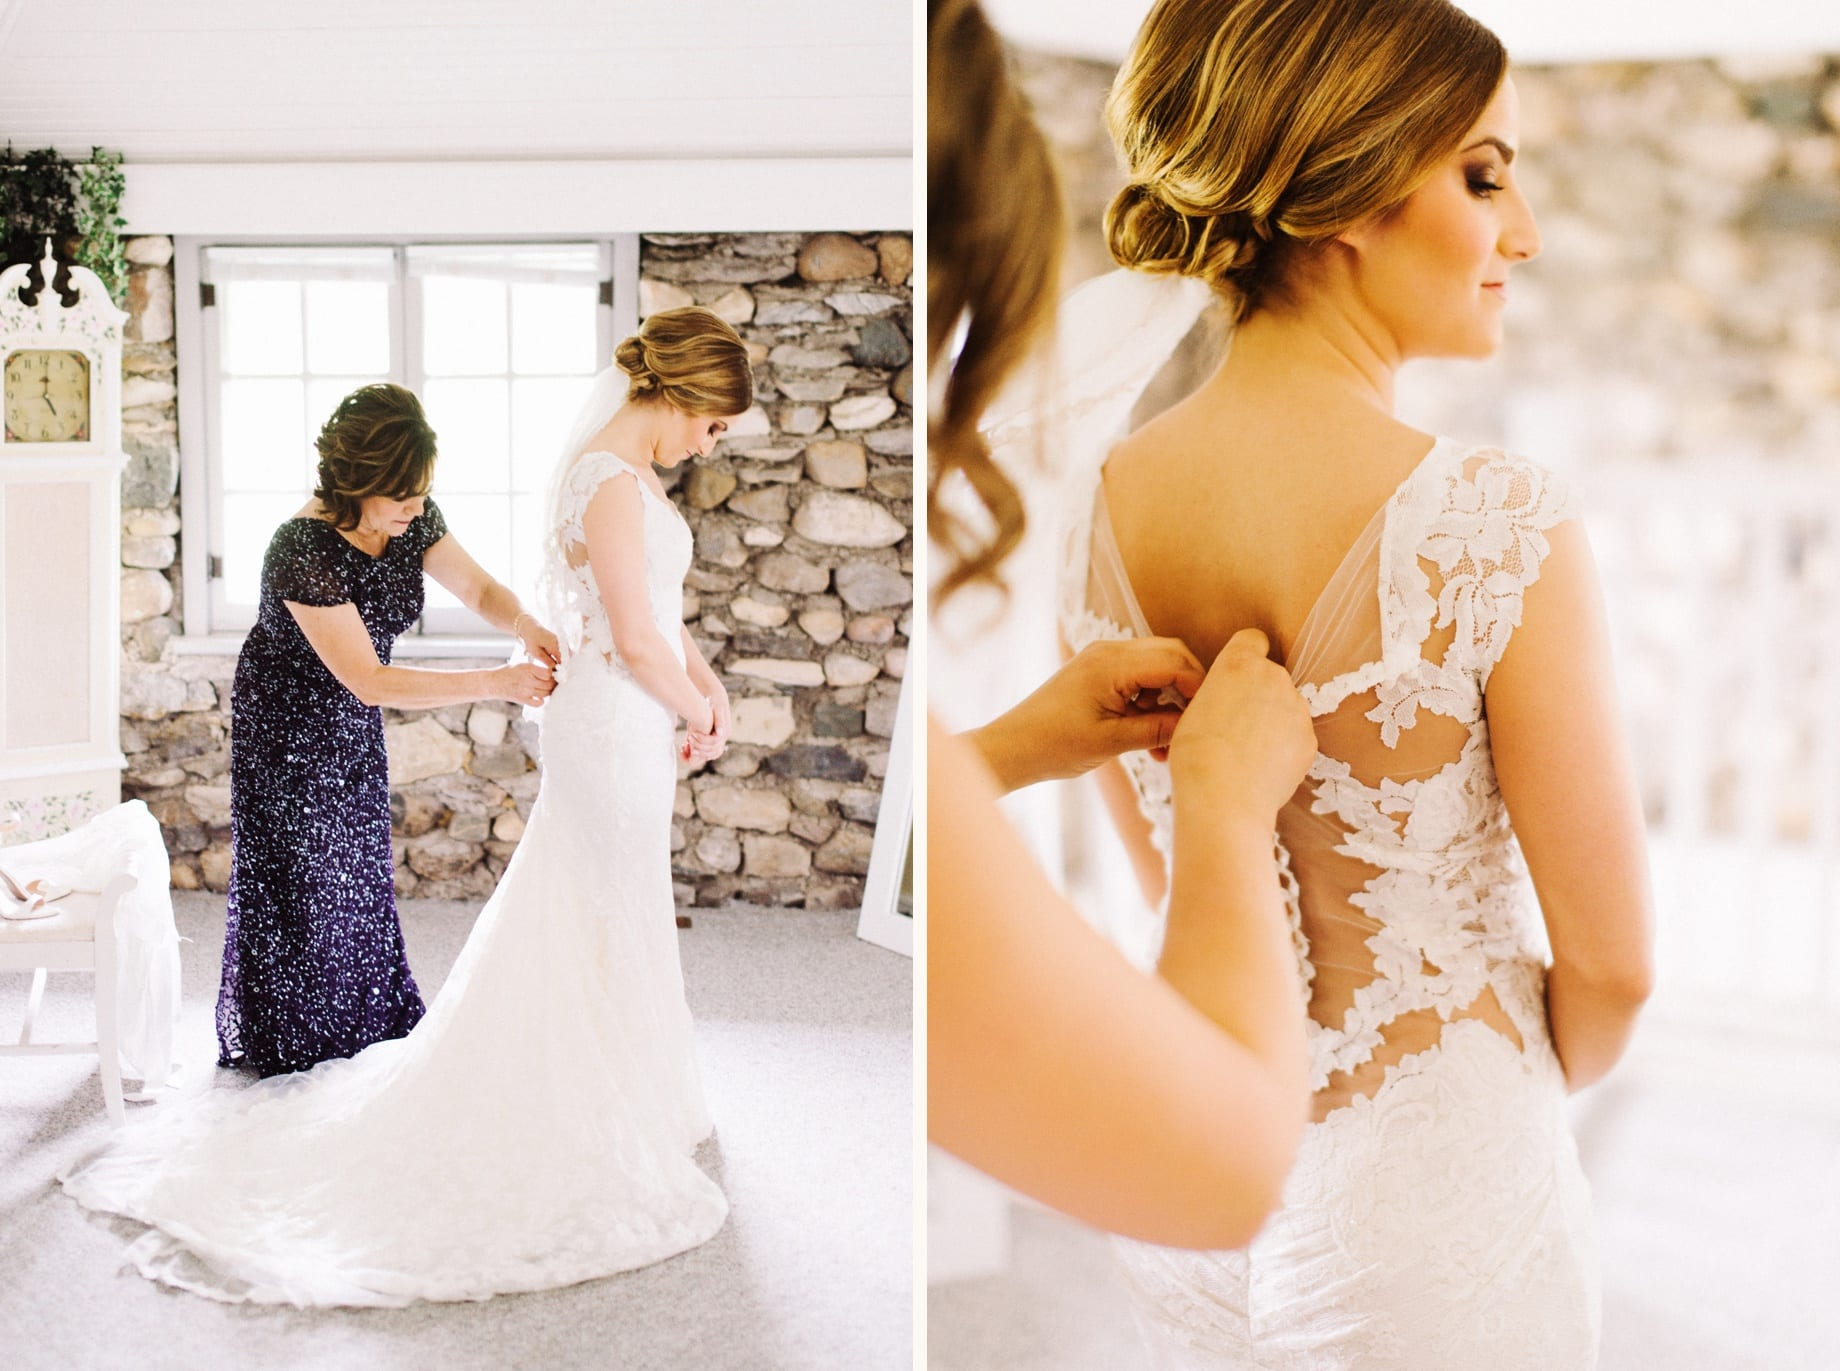 mother helps bride into dress